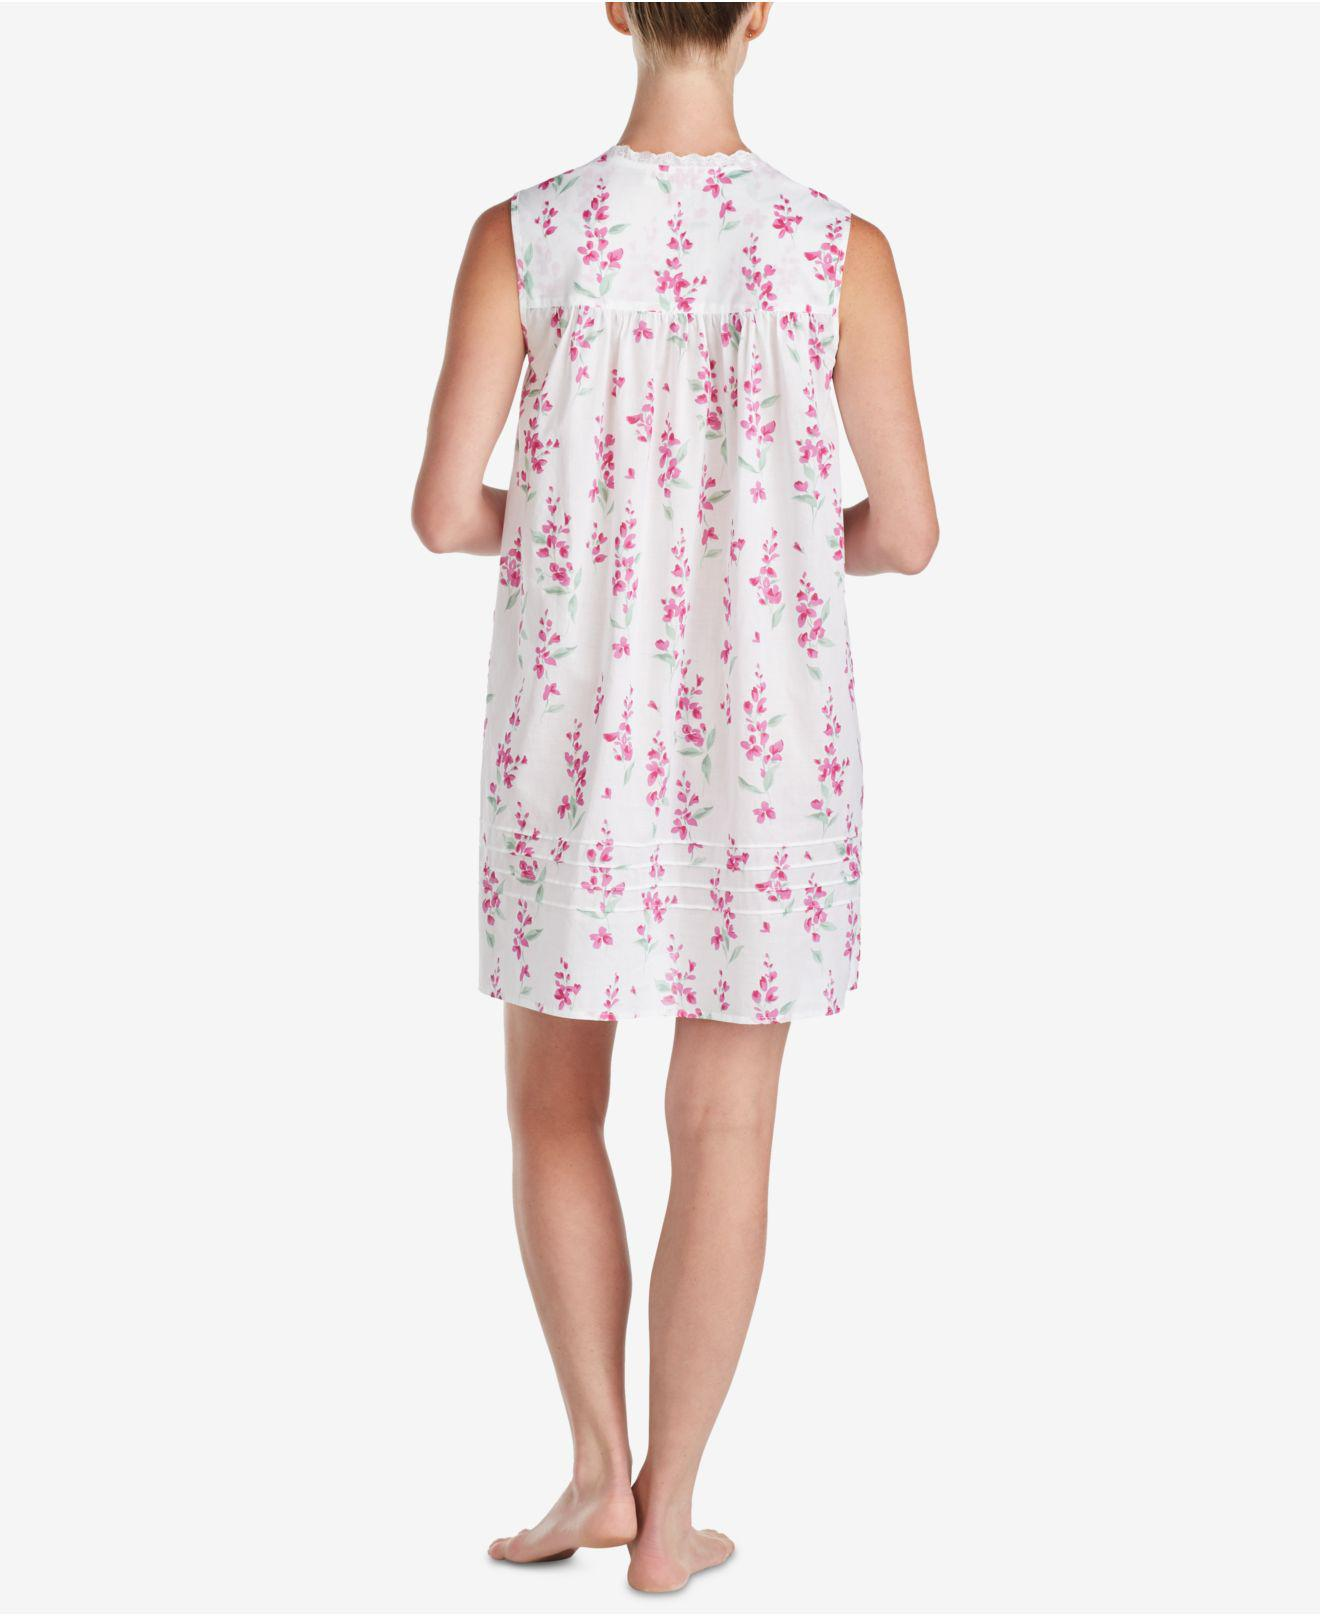 Lyst - Eileen West Lace-trim Woven Cotton Nightgown in Pink abb236254